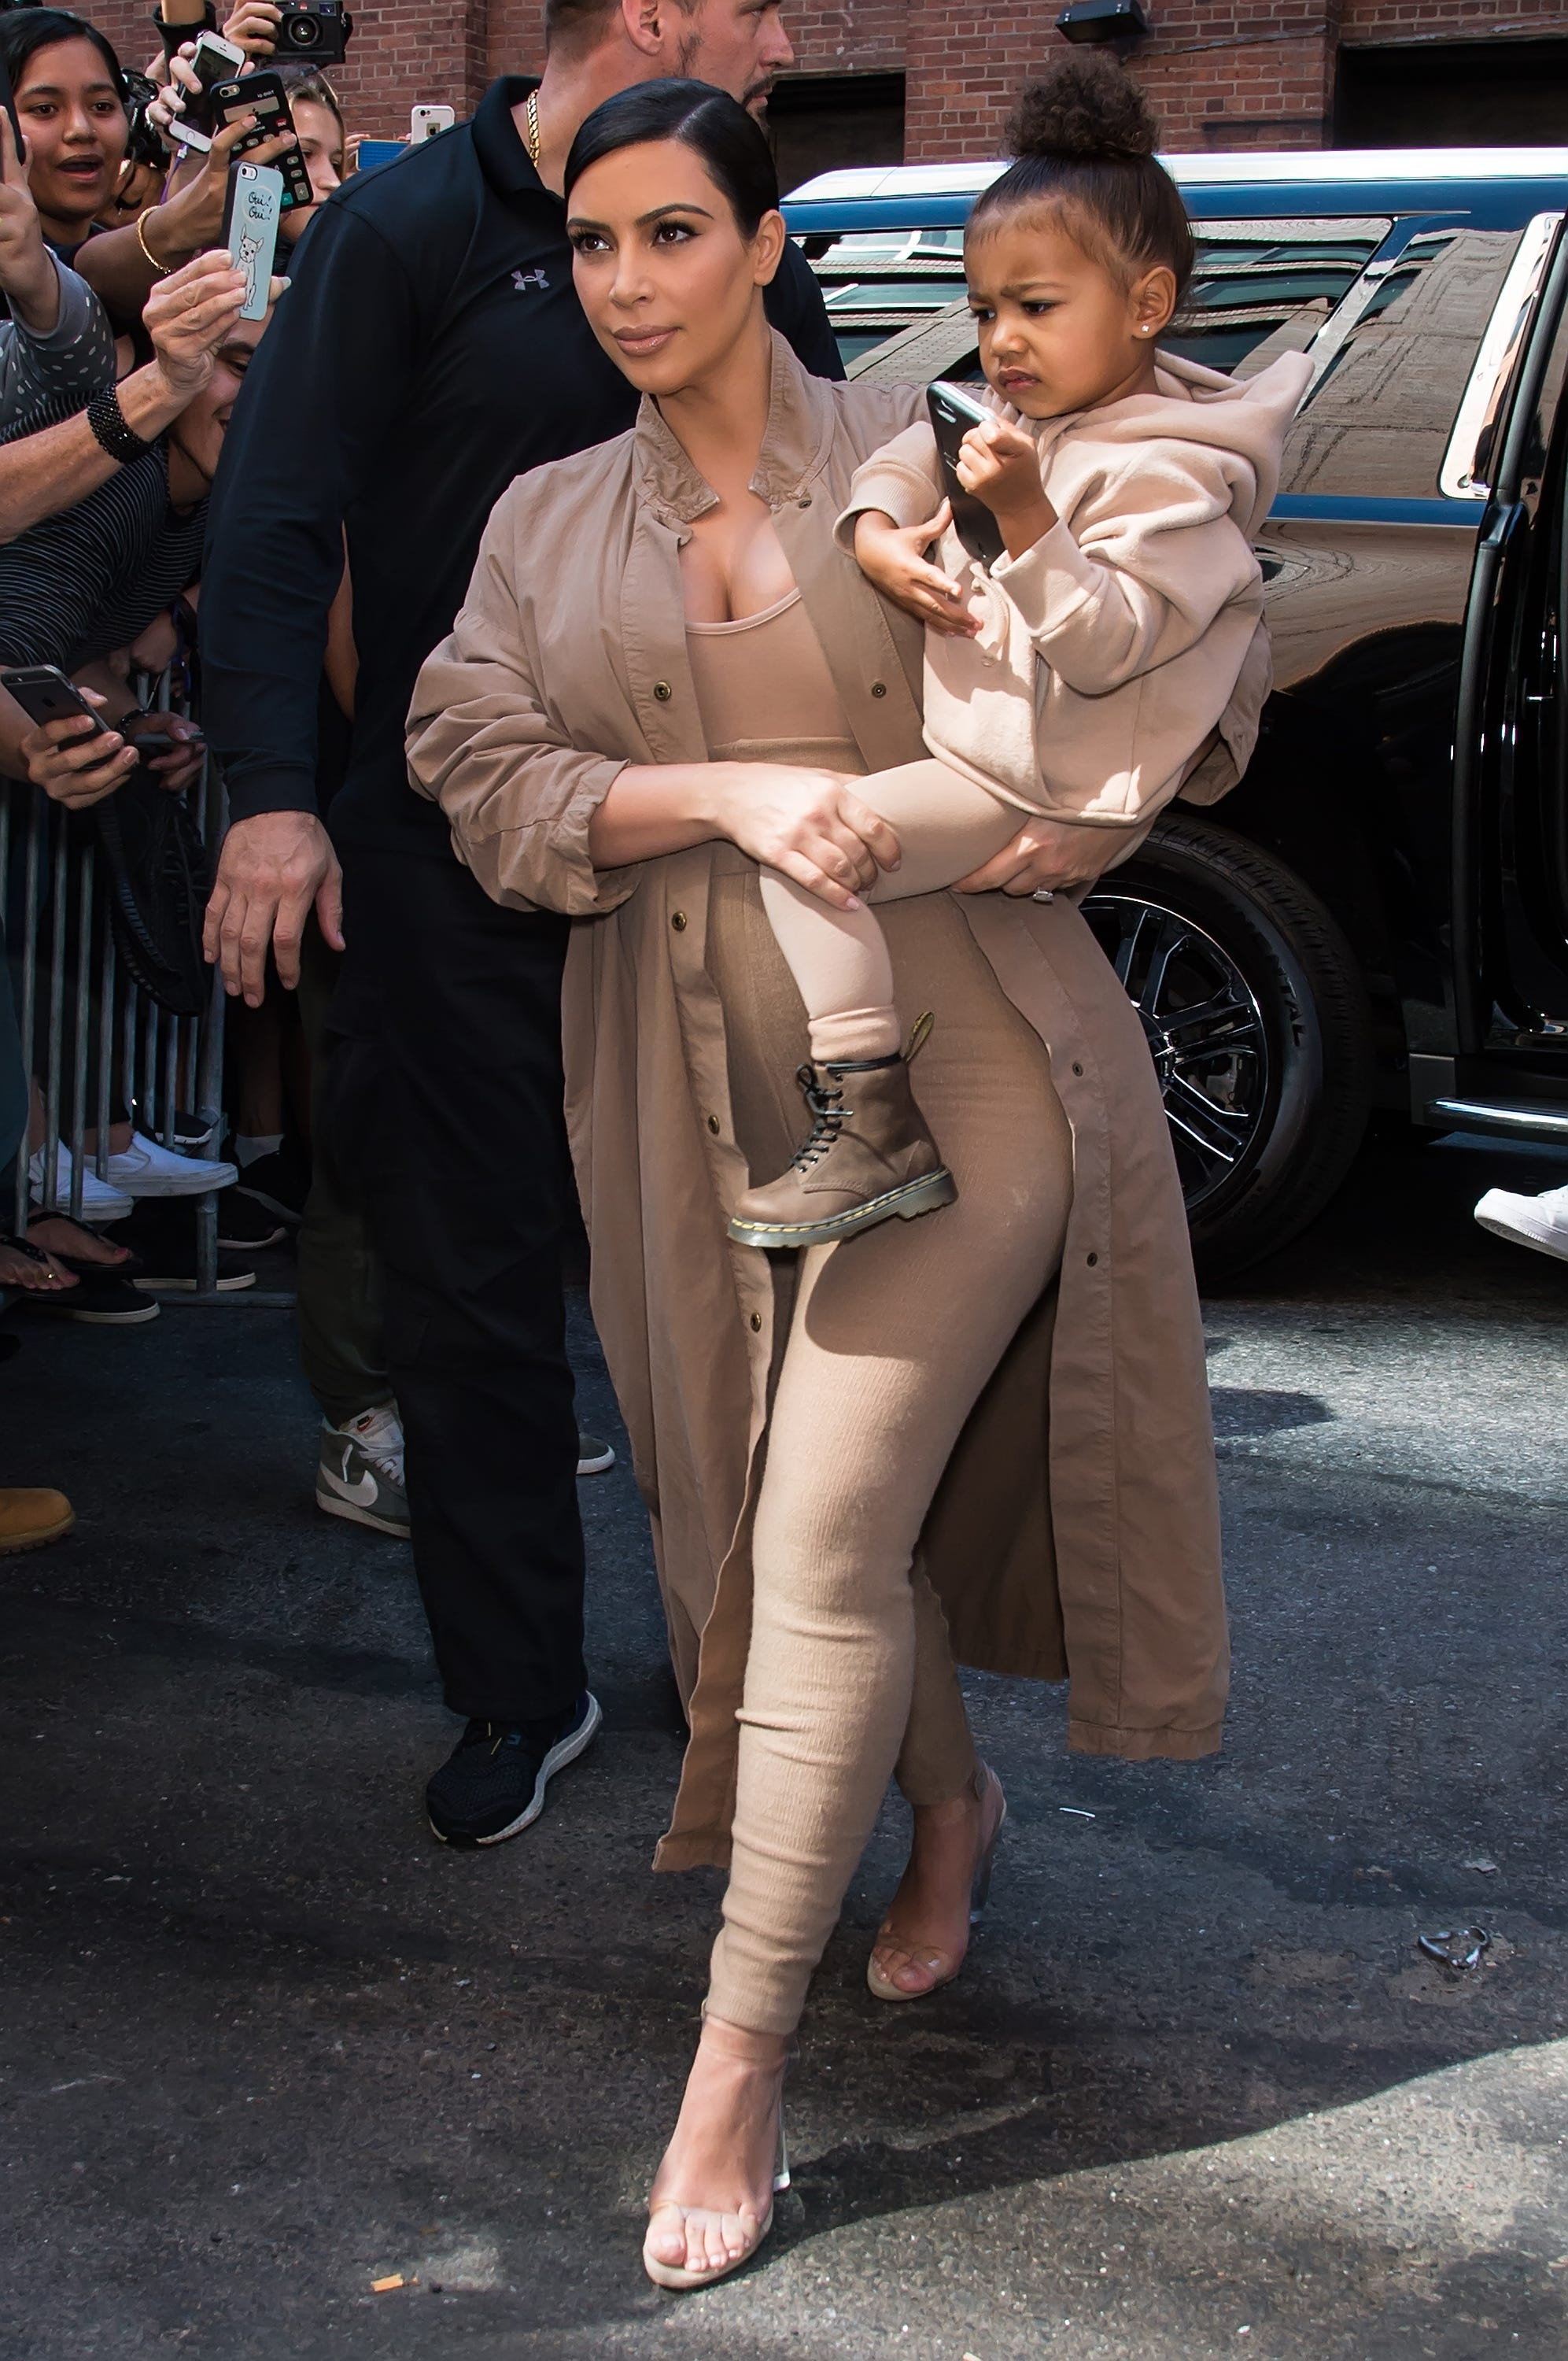 north-west-makes-aposthriller-apos-inspired-runway-debut-with-mom-kim-kardashian-in-attendance